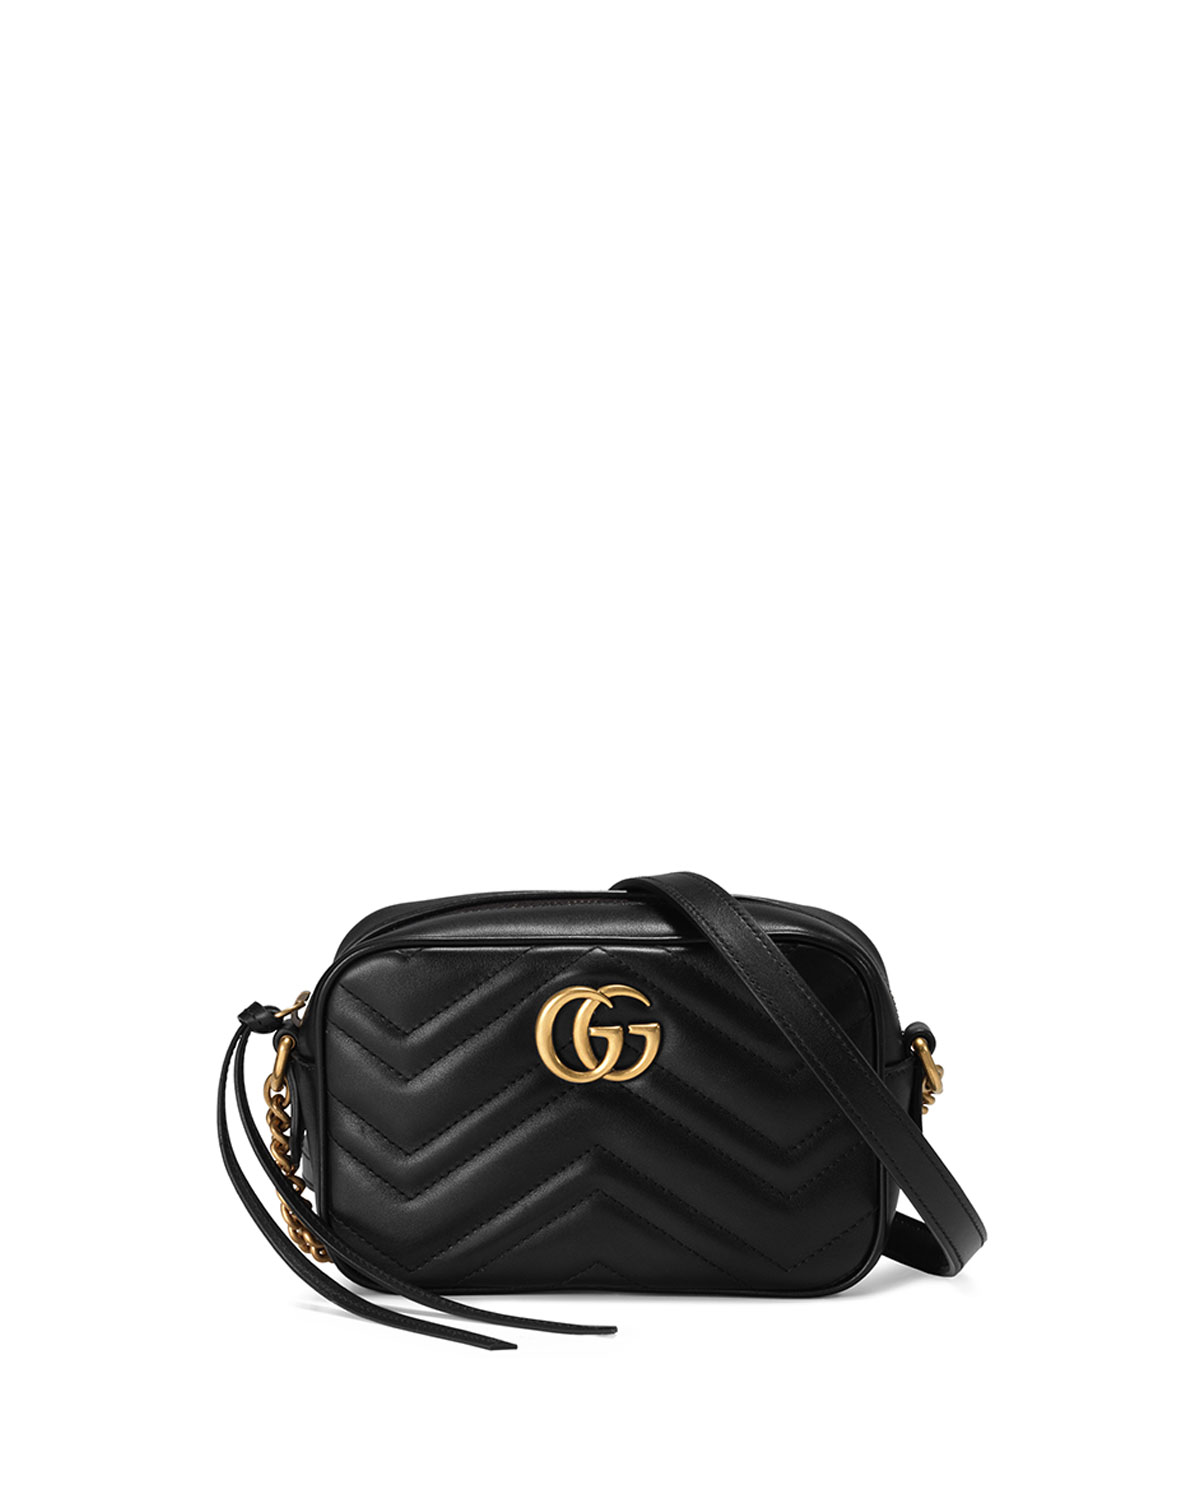 Gucci Gg Marmont Mini Matelasse Camera Bag Black Neiman Marcus